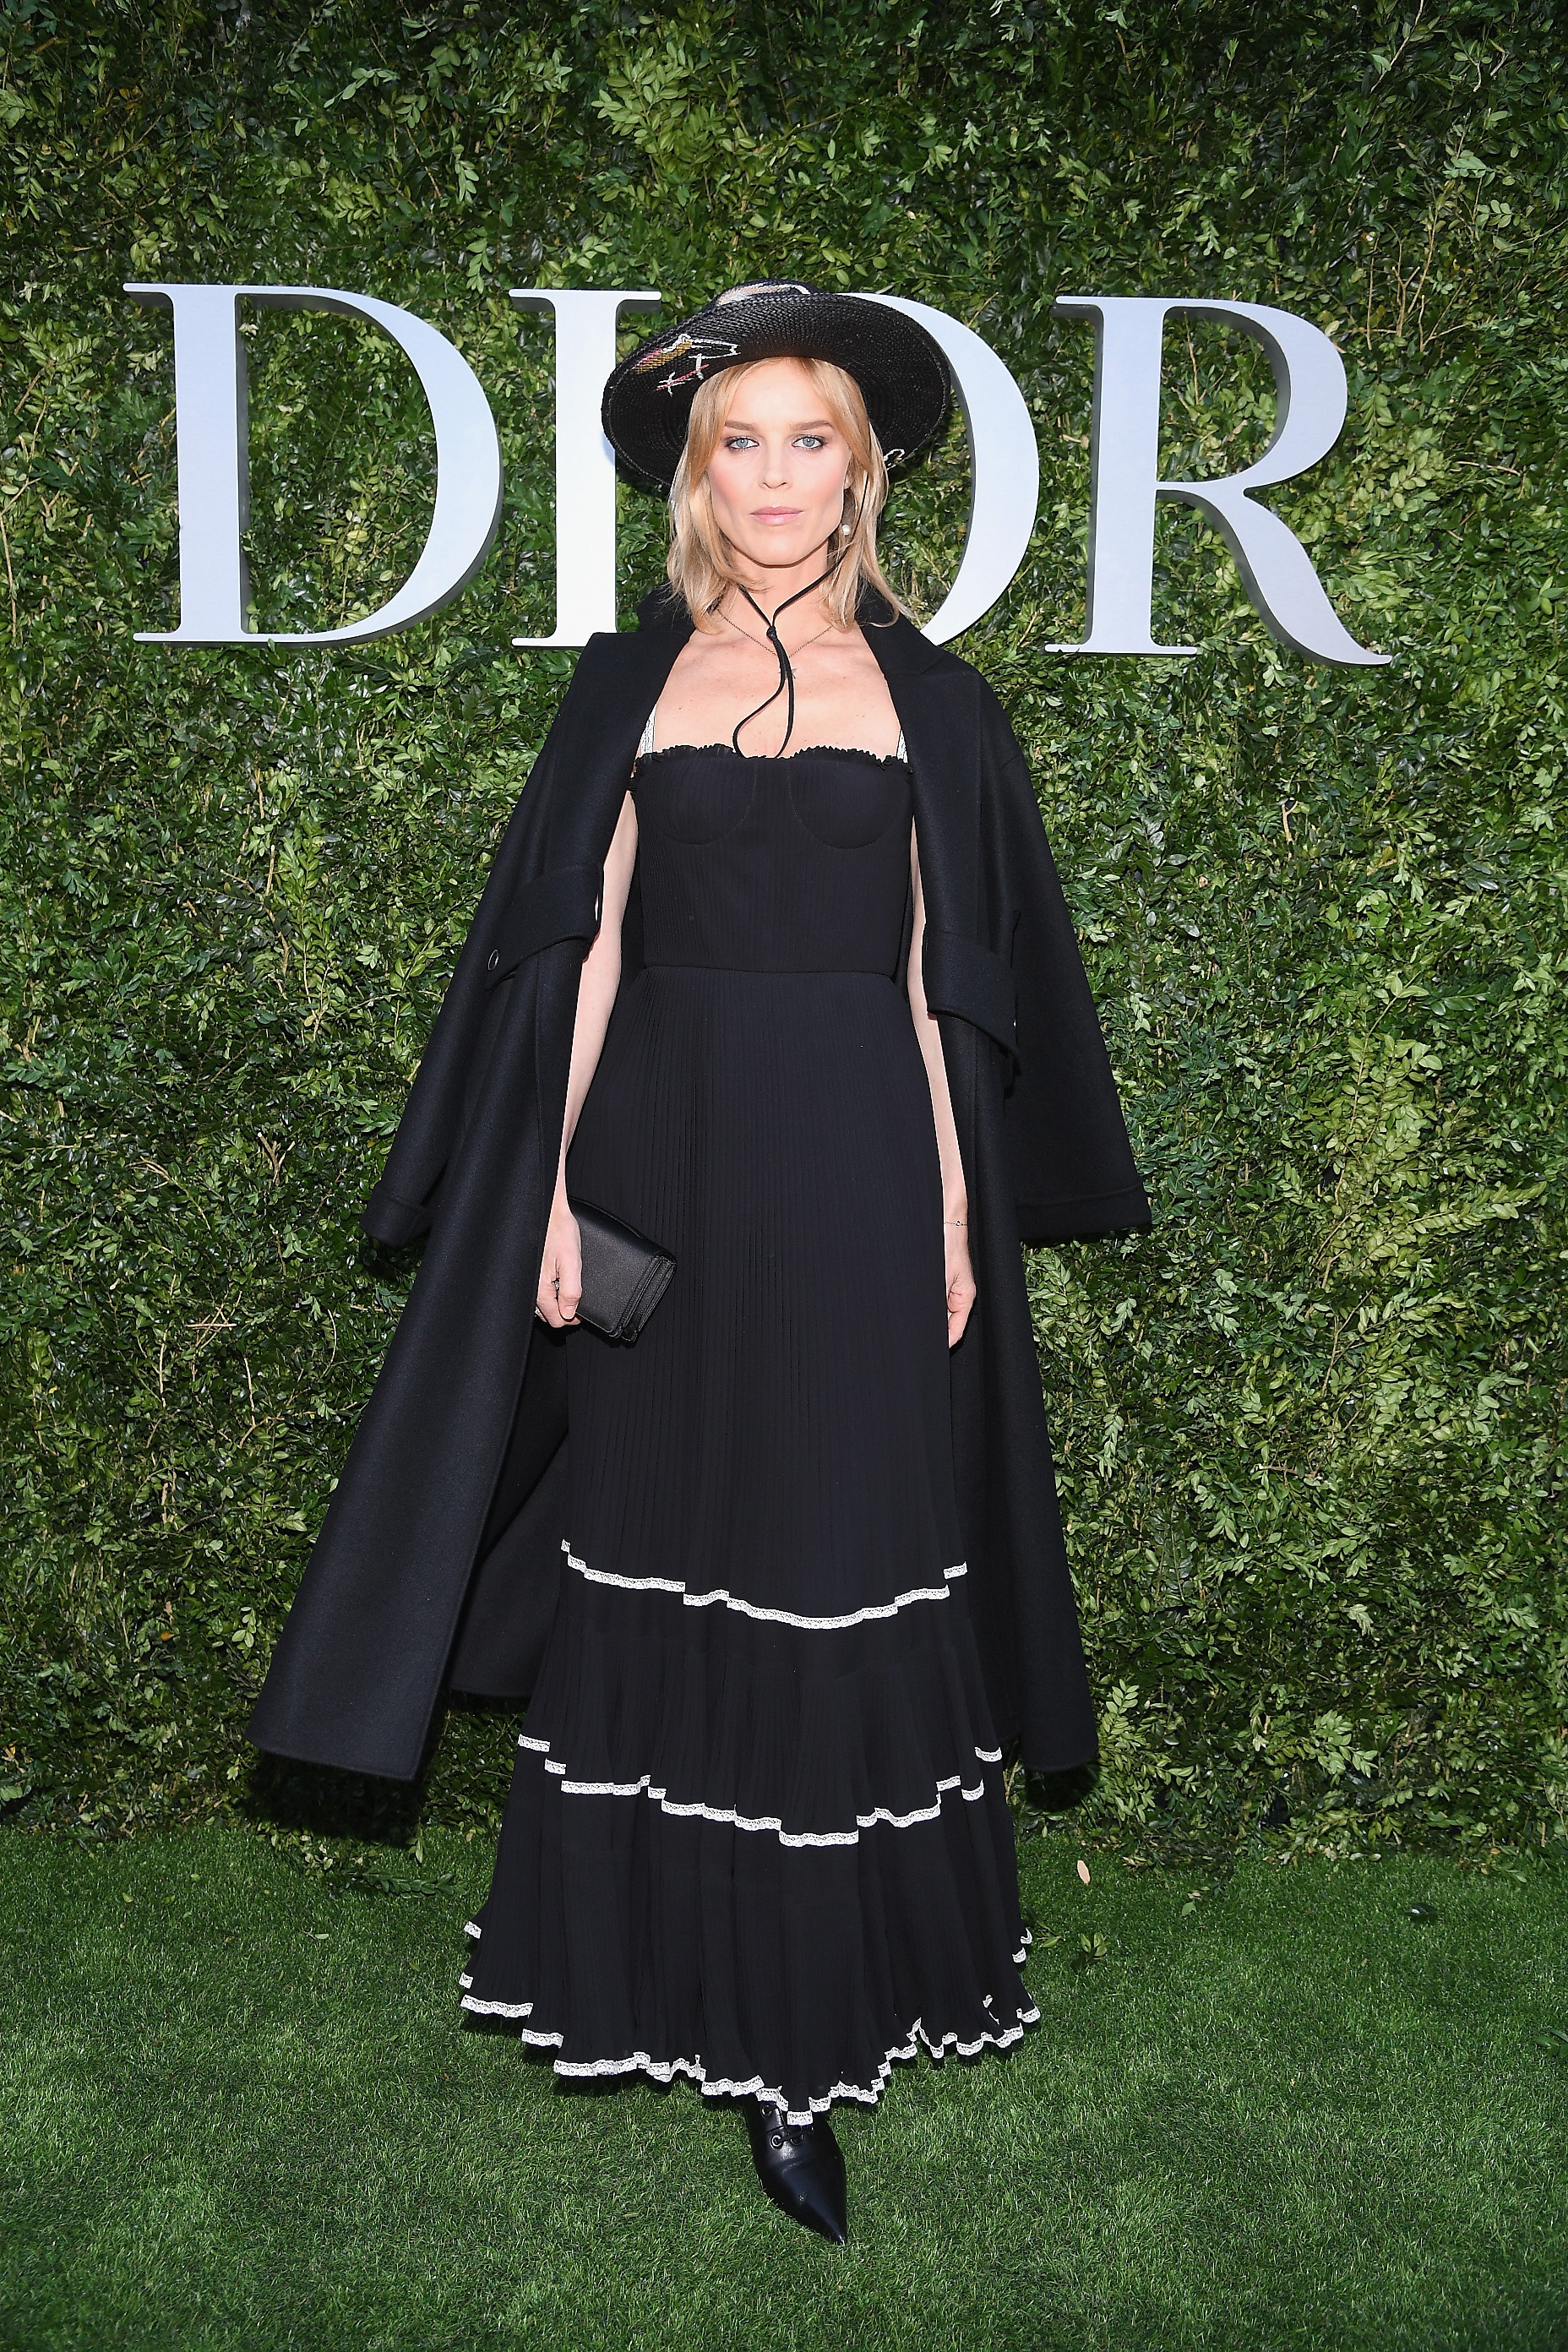 PARIS, FRANCE - JULY 03:  Eva Herzigova attends 'Christian Dior, couturier du reve' Exhibition Launch celebrating 70 years of creation  at Musee Des Arts Decoratifs on July 3, 2017 in Paris, France.  (Photo by Pascal Le Segretain/Getty Images for Christian Dior) *** Local Caption *** Eva Herzigova